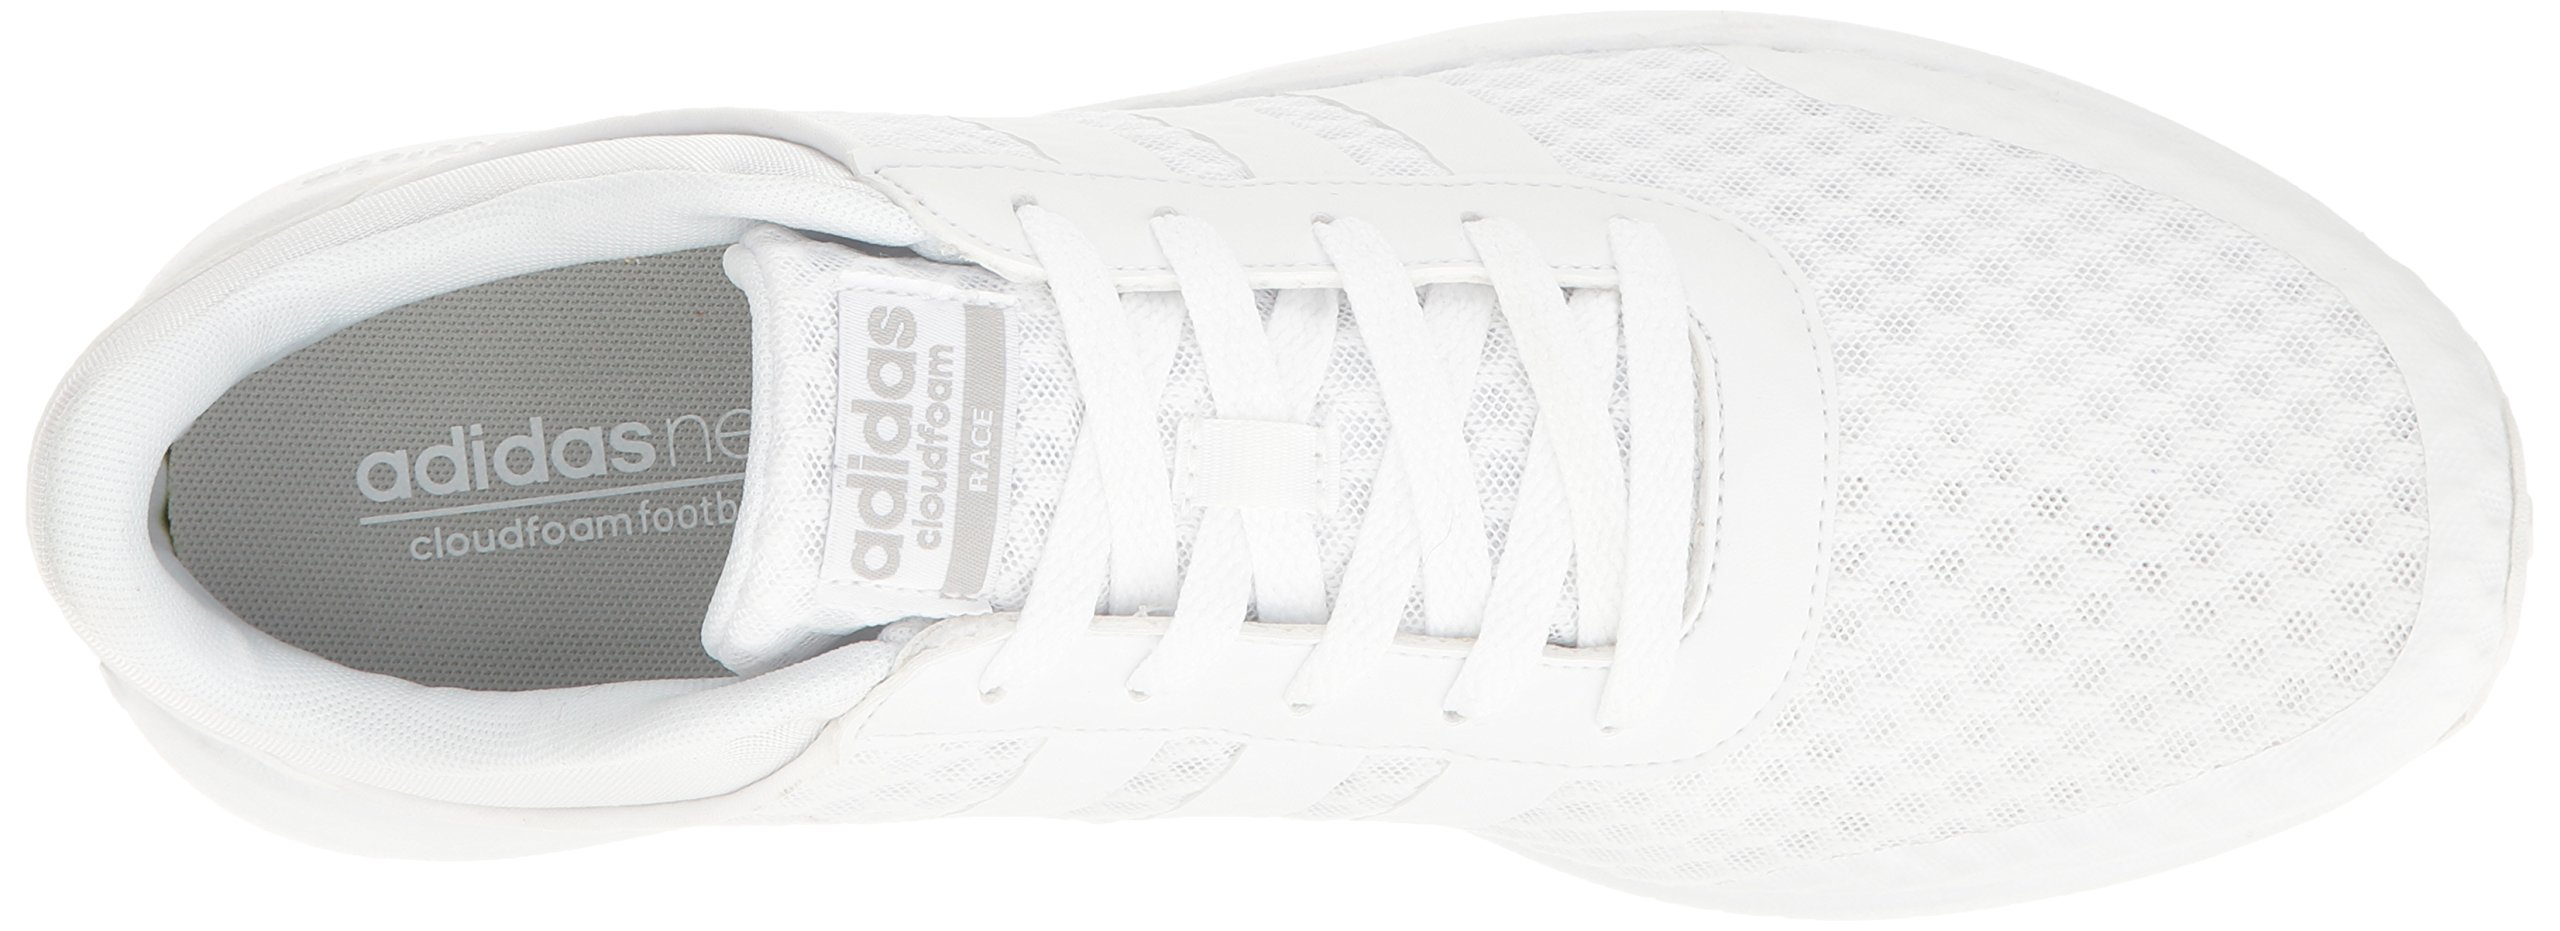 adidas Men's Cloudfoam Race Running Shoe, White/Clear Onix, 9 D-Medium by adidas (Image #8)